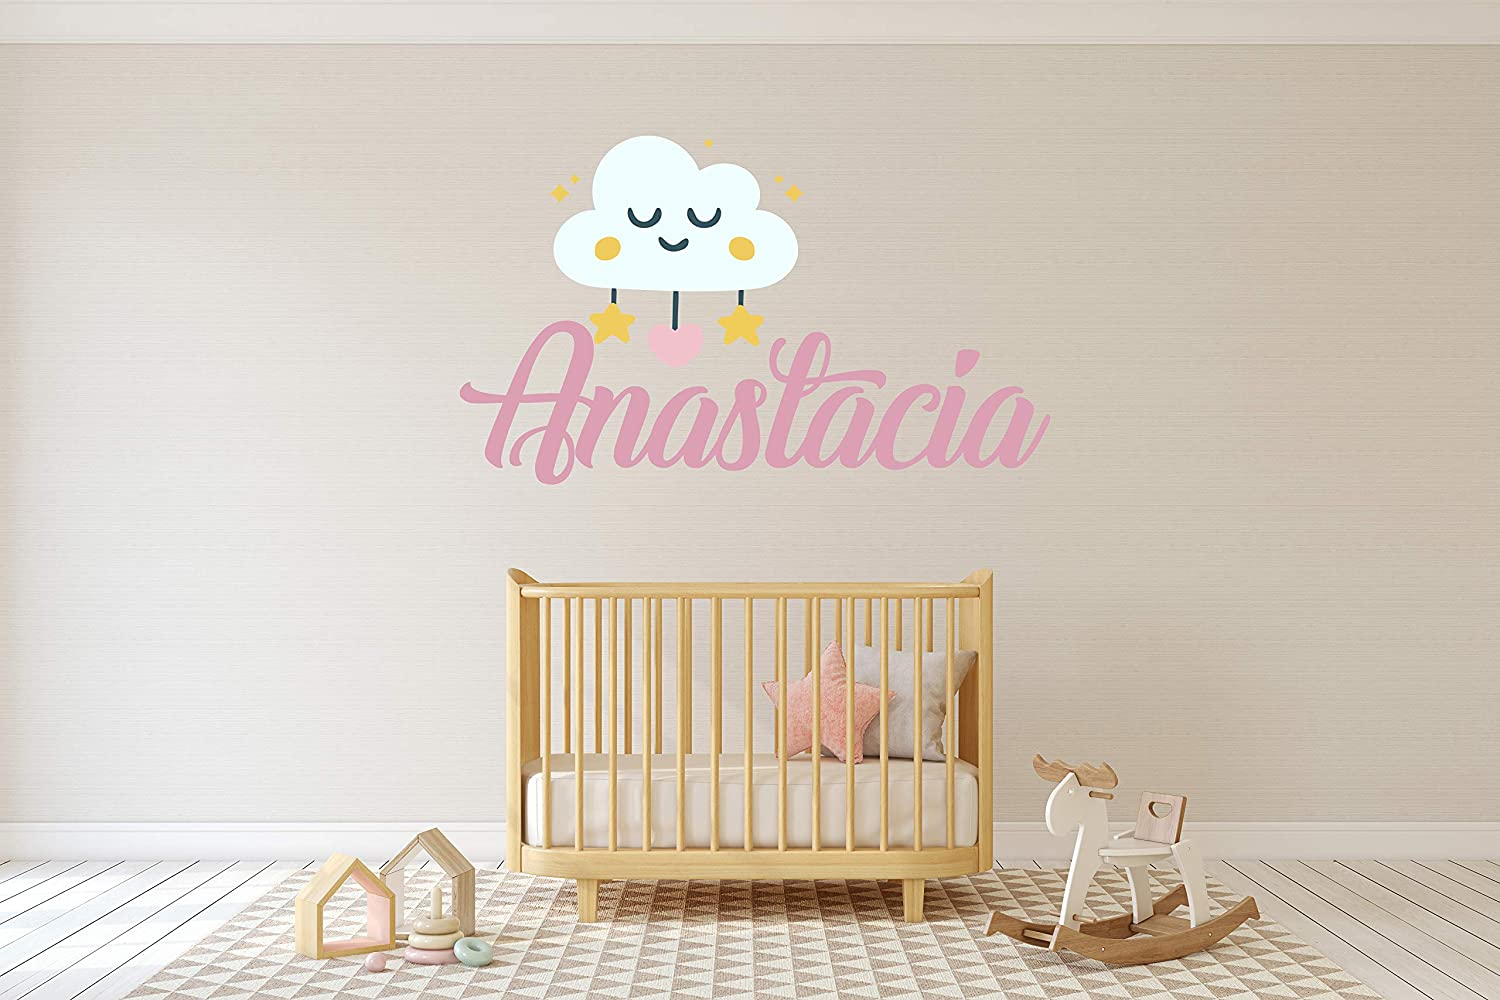 Tucson Mall Personalized Girl Name with Cloud Atlanta Mall Baby and - Nursery Star